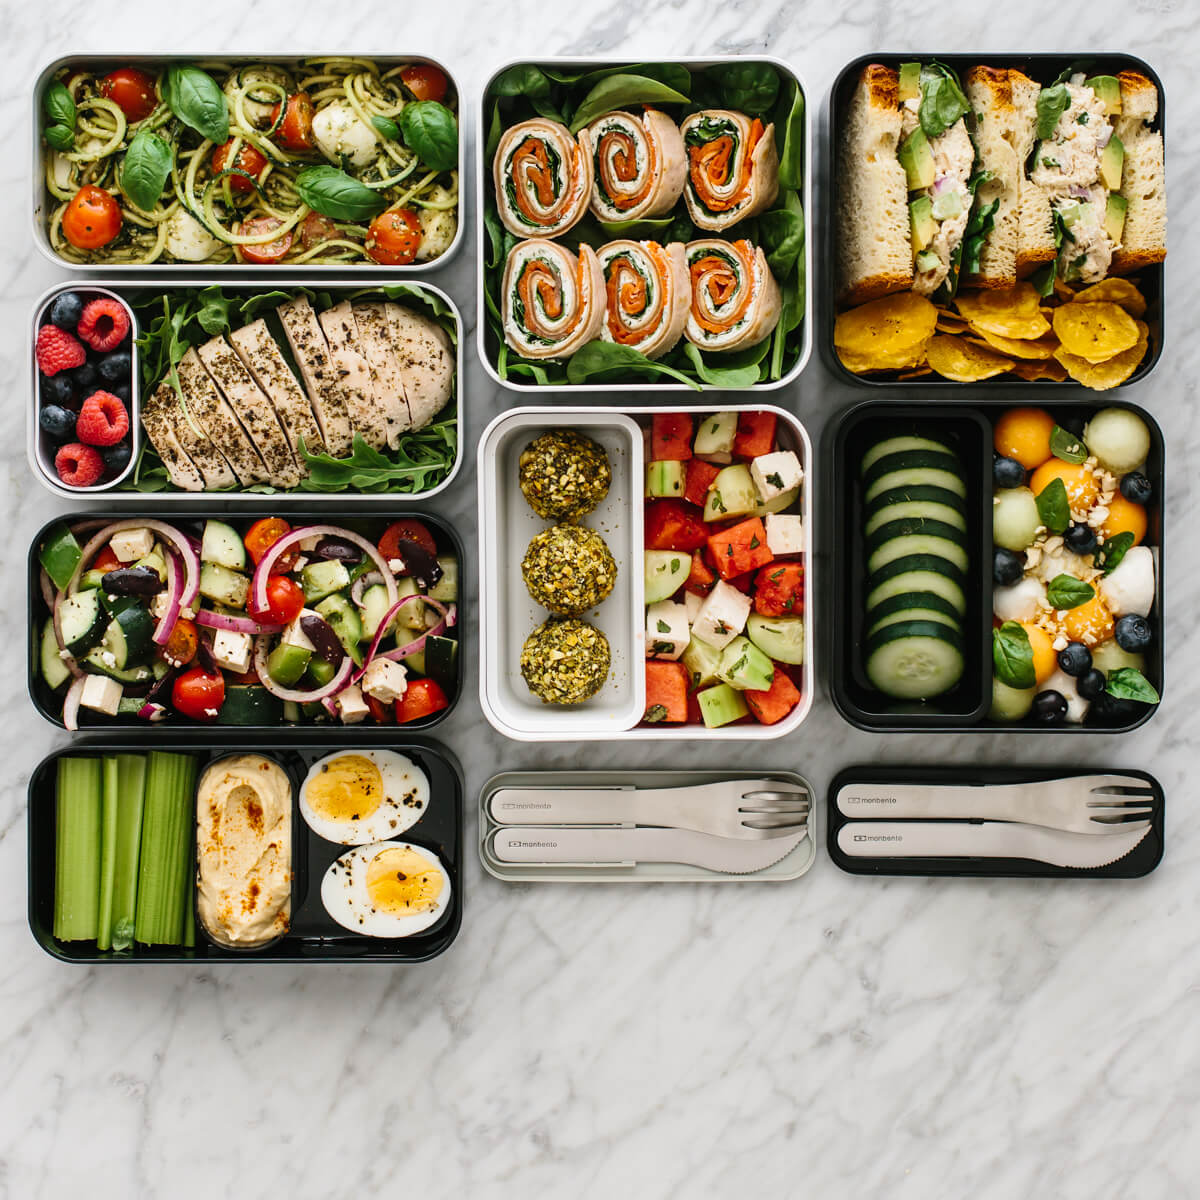 Bento Box Lunch Ideas For Work Or School Downshiftology